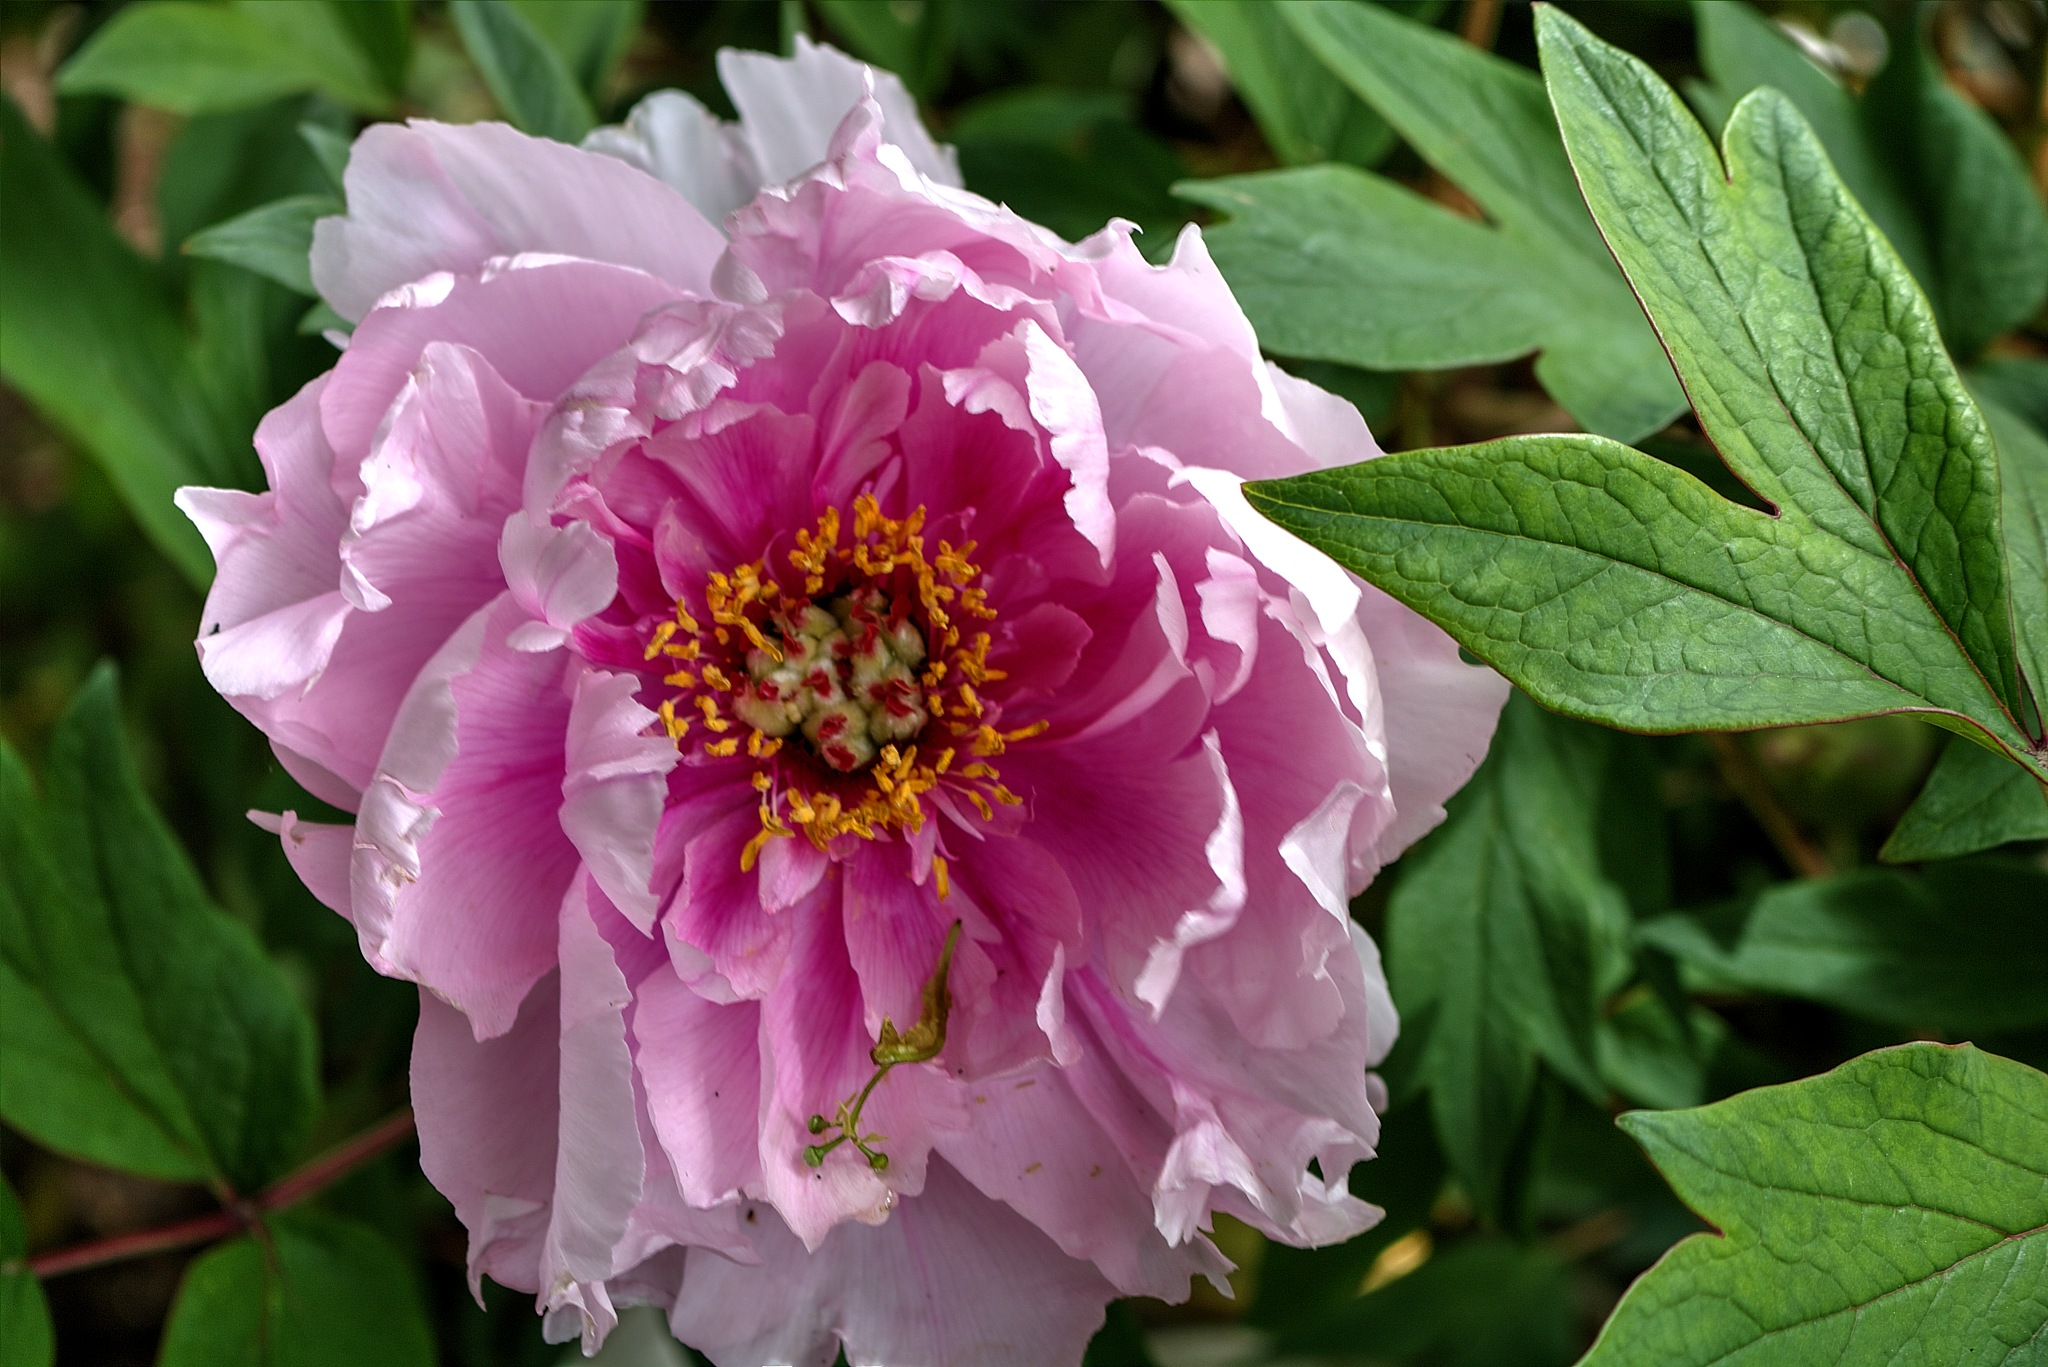 Paeonia suffruticosa – lesnata potonika (2) by zvnktomasevic